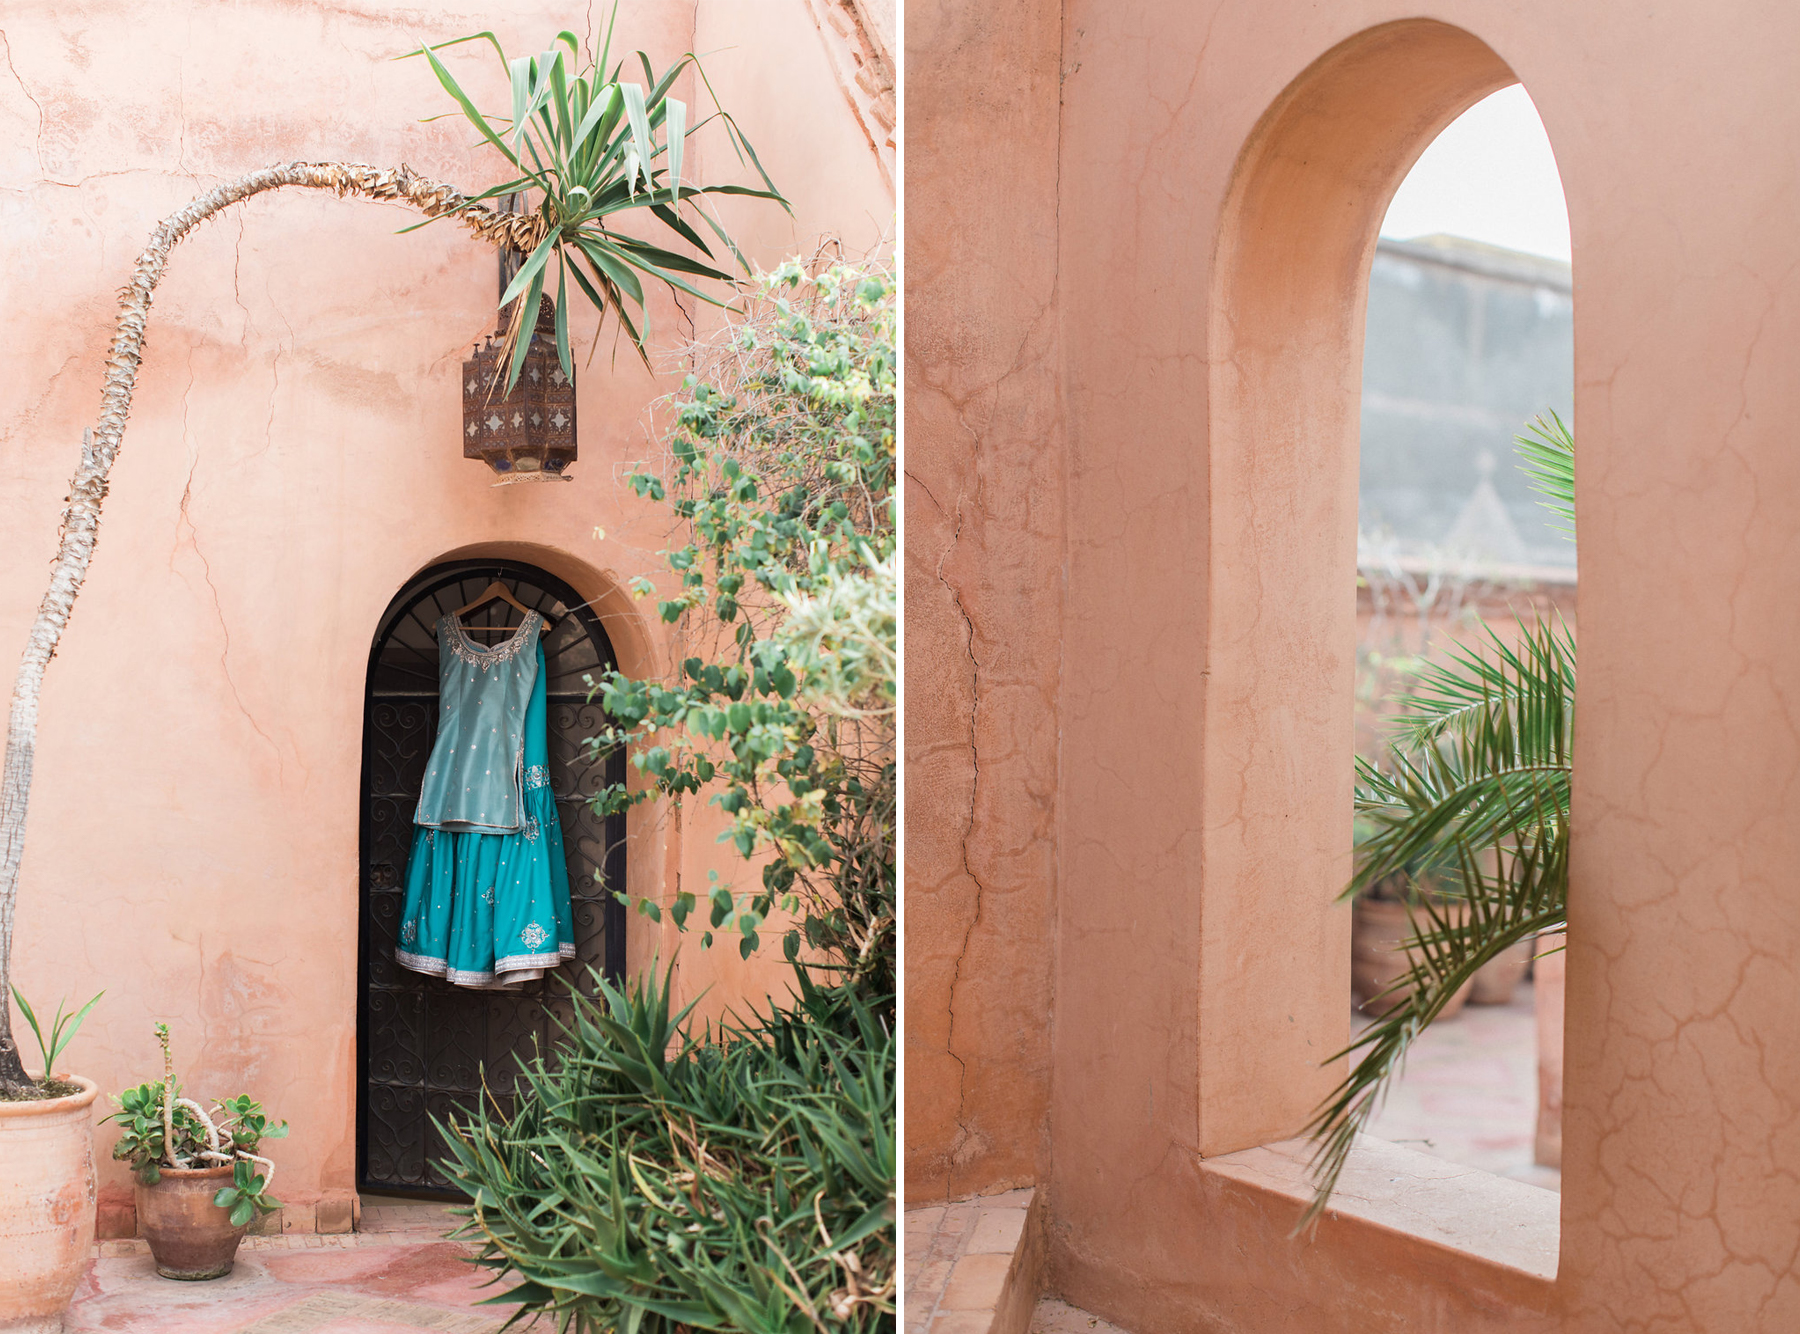 mariaraophotography_marrakechwedding-26-31-web.jpg